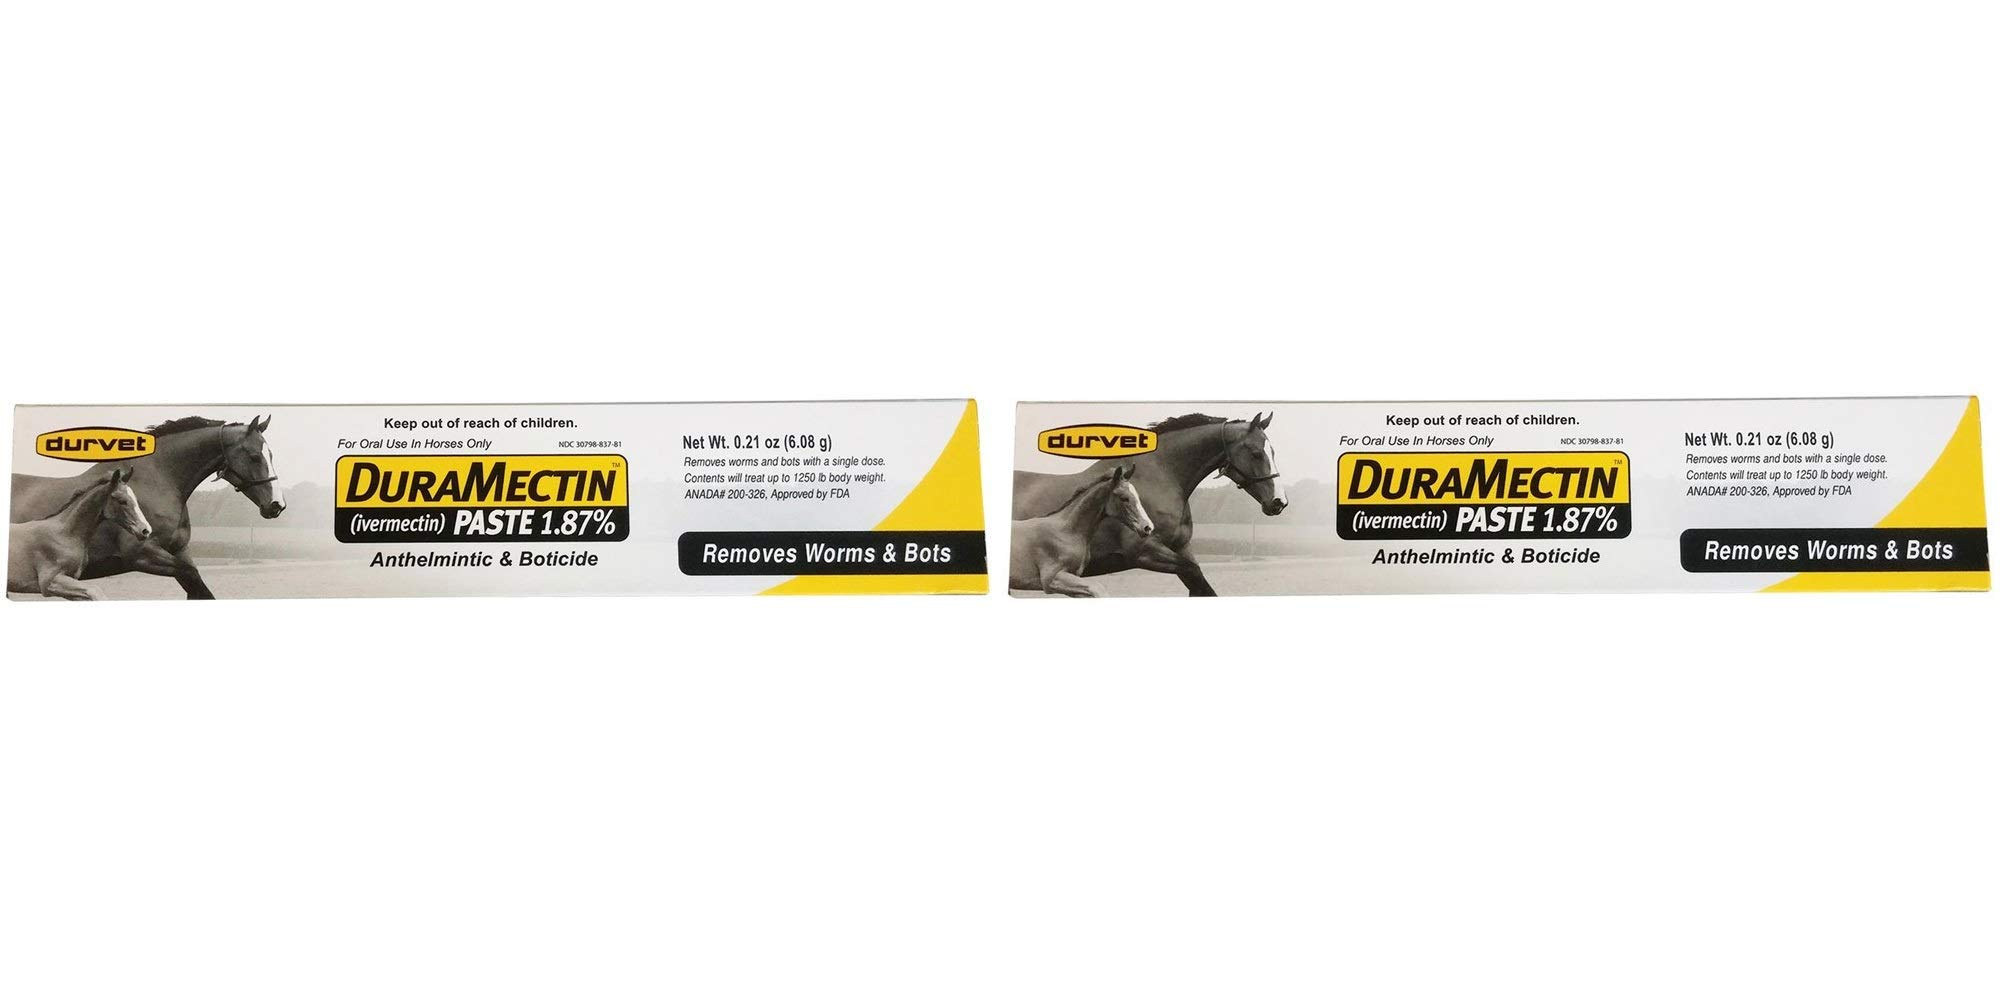 Duramectin Ivermectin Paste 1.87% for Horses, 0.21 oz (Twо Pаck)